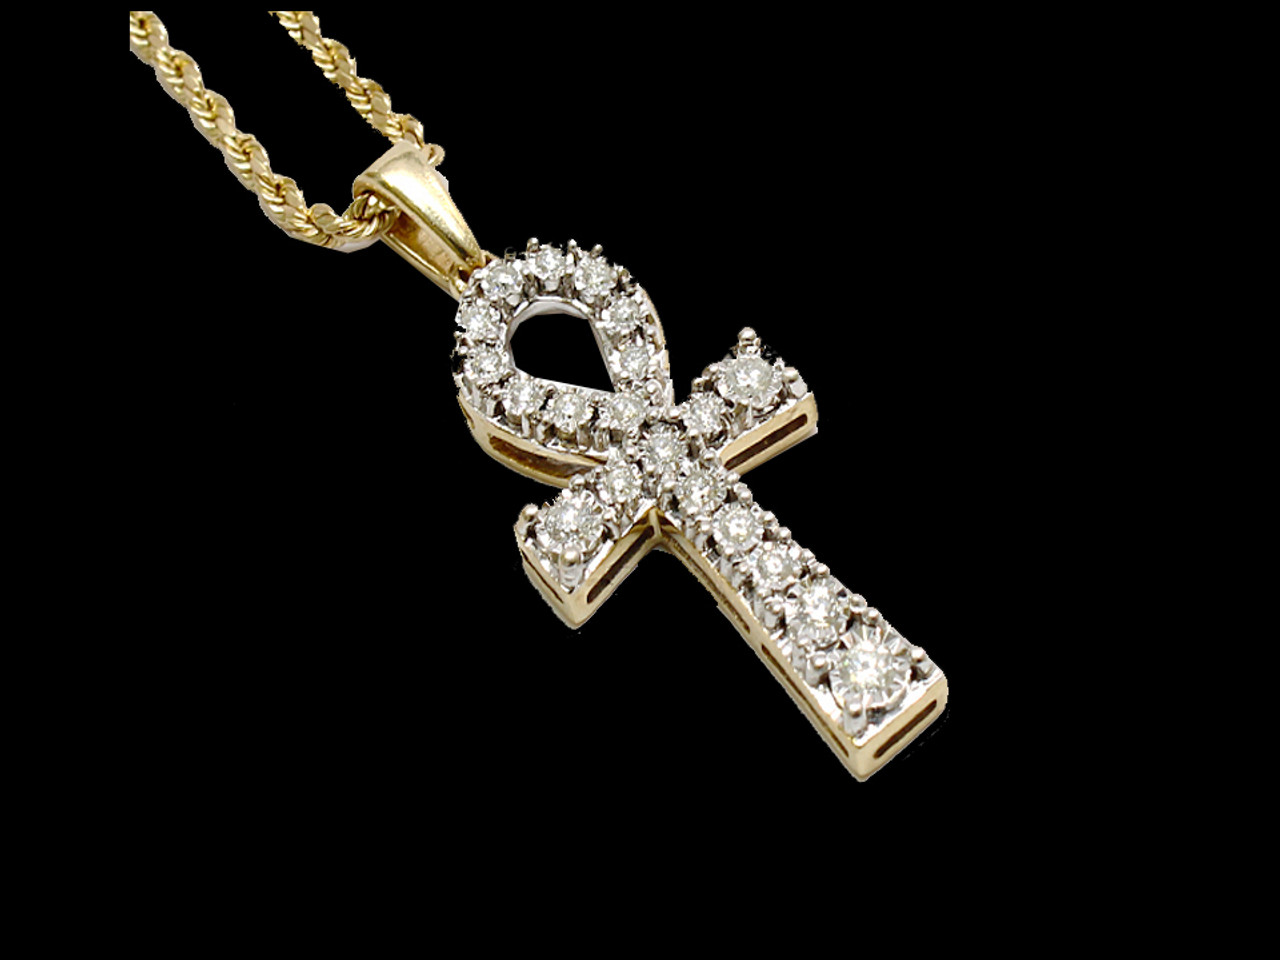 real necklaces chain jewellery diamond chains necklace